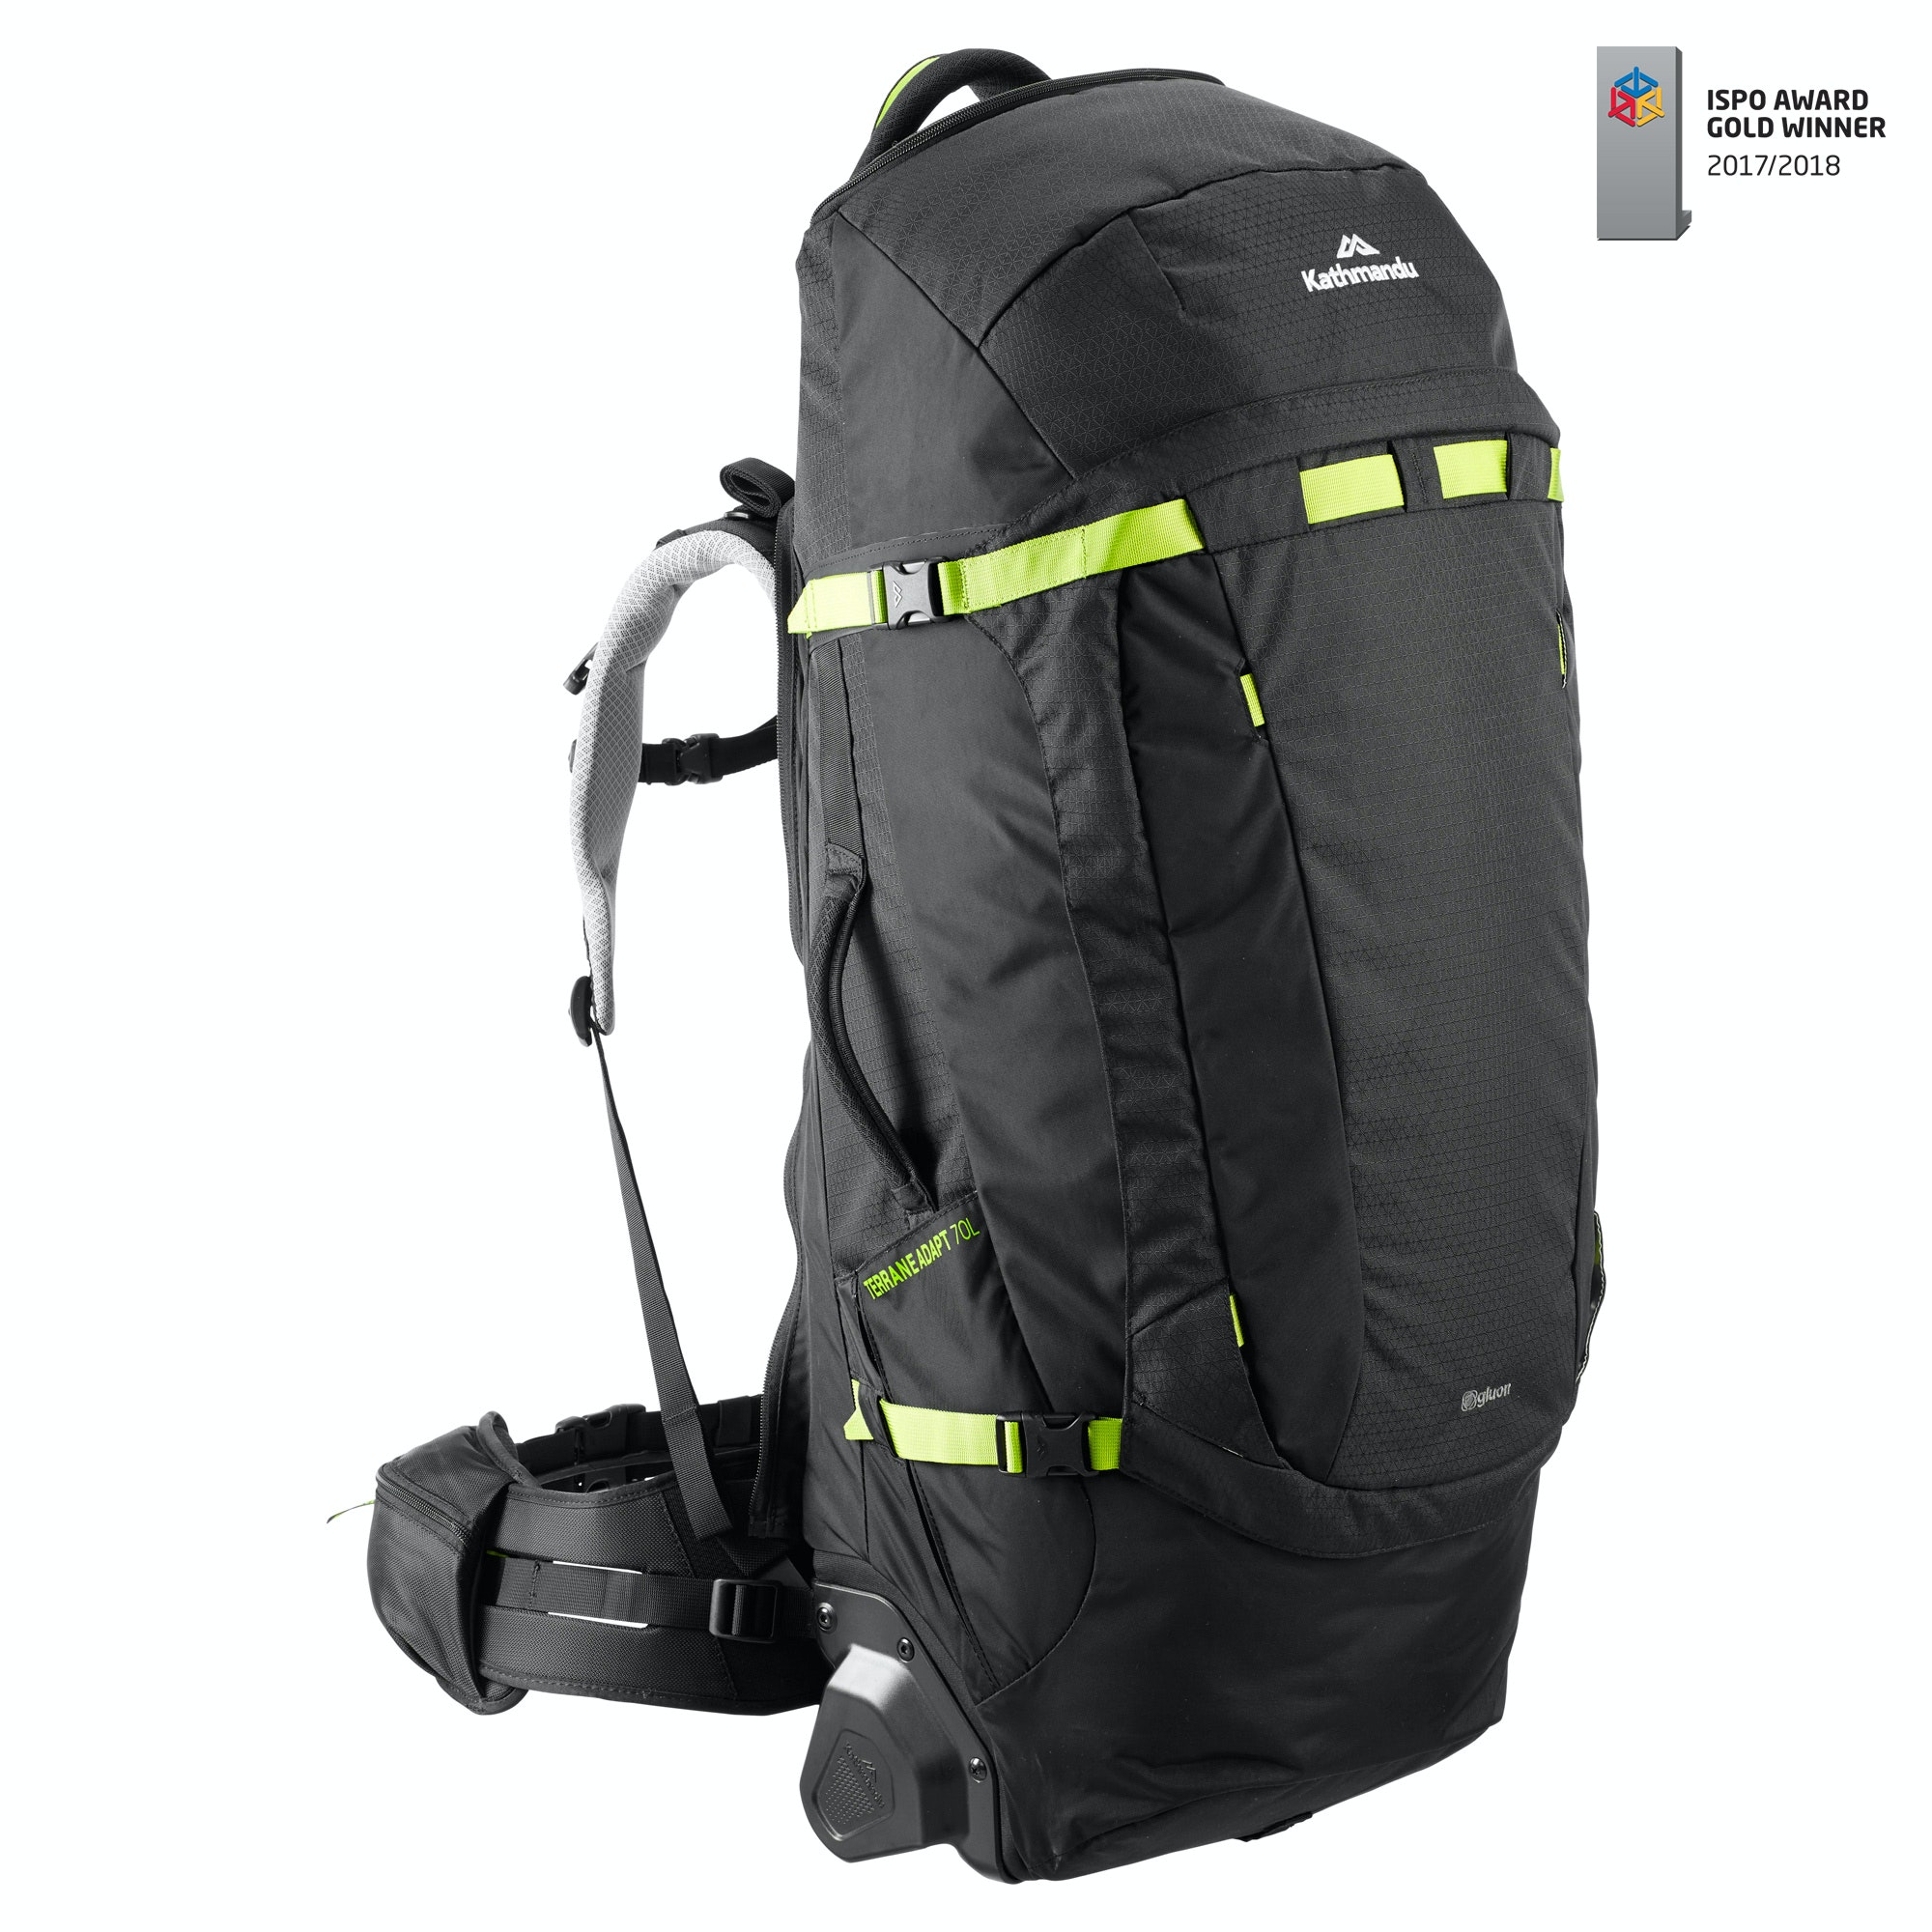 Kathmandu Terrane Adapt 70L Pack Trolley Bag Wheels Hybrid Travel ...